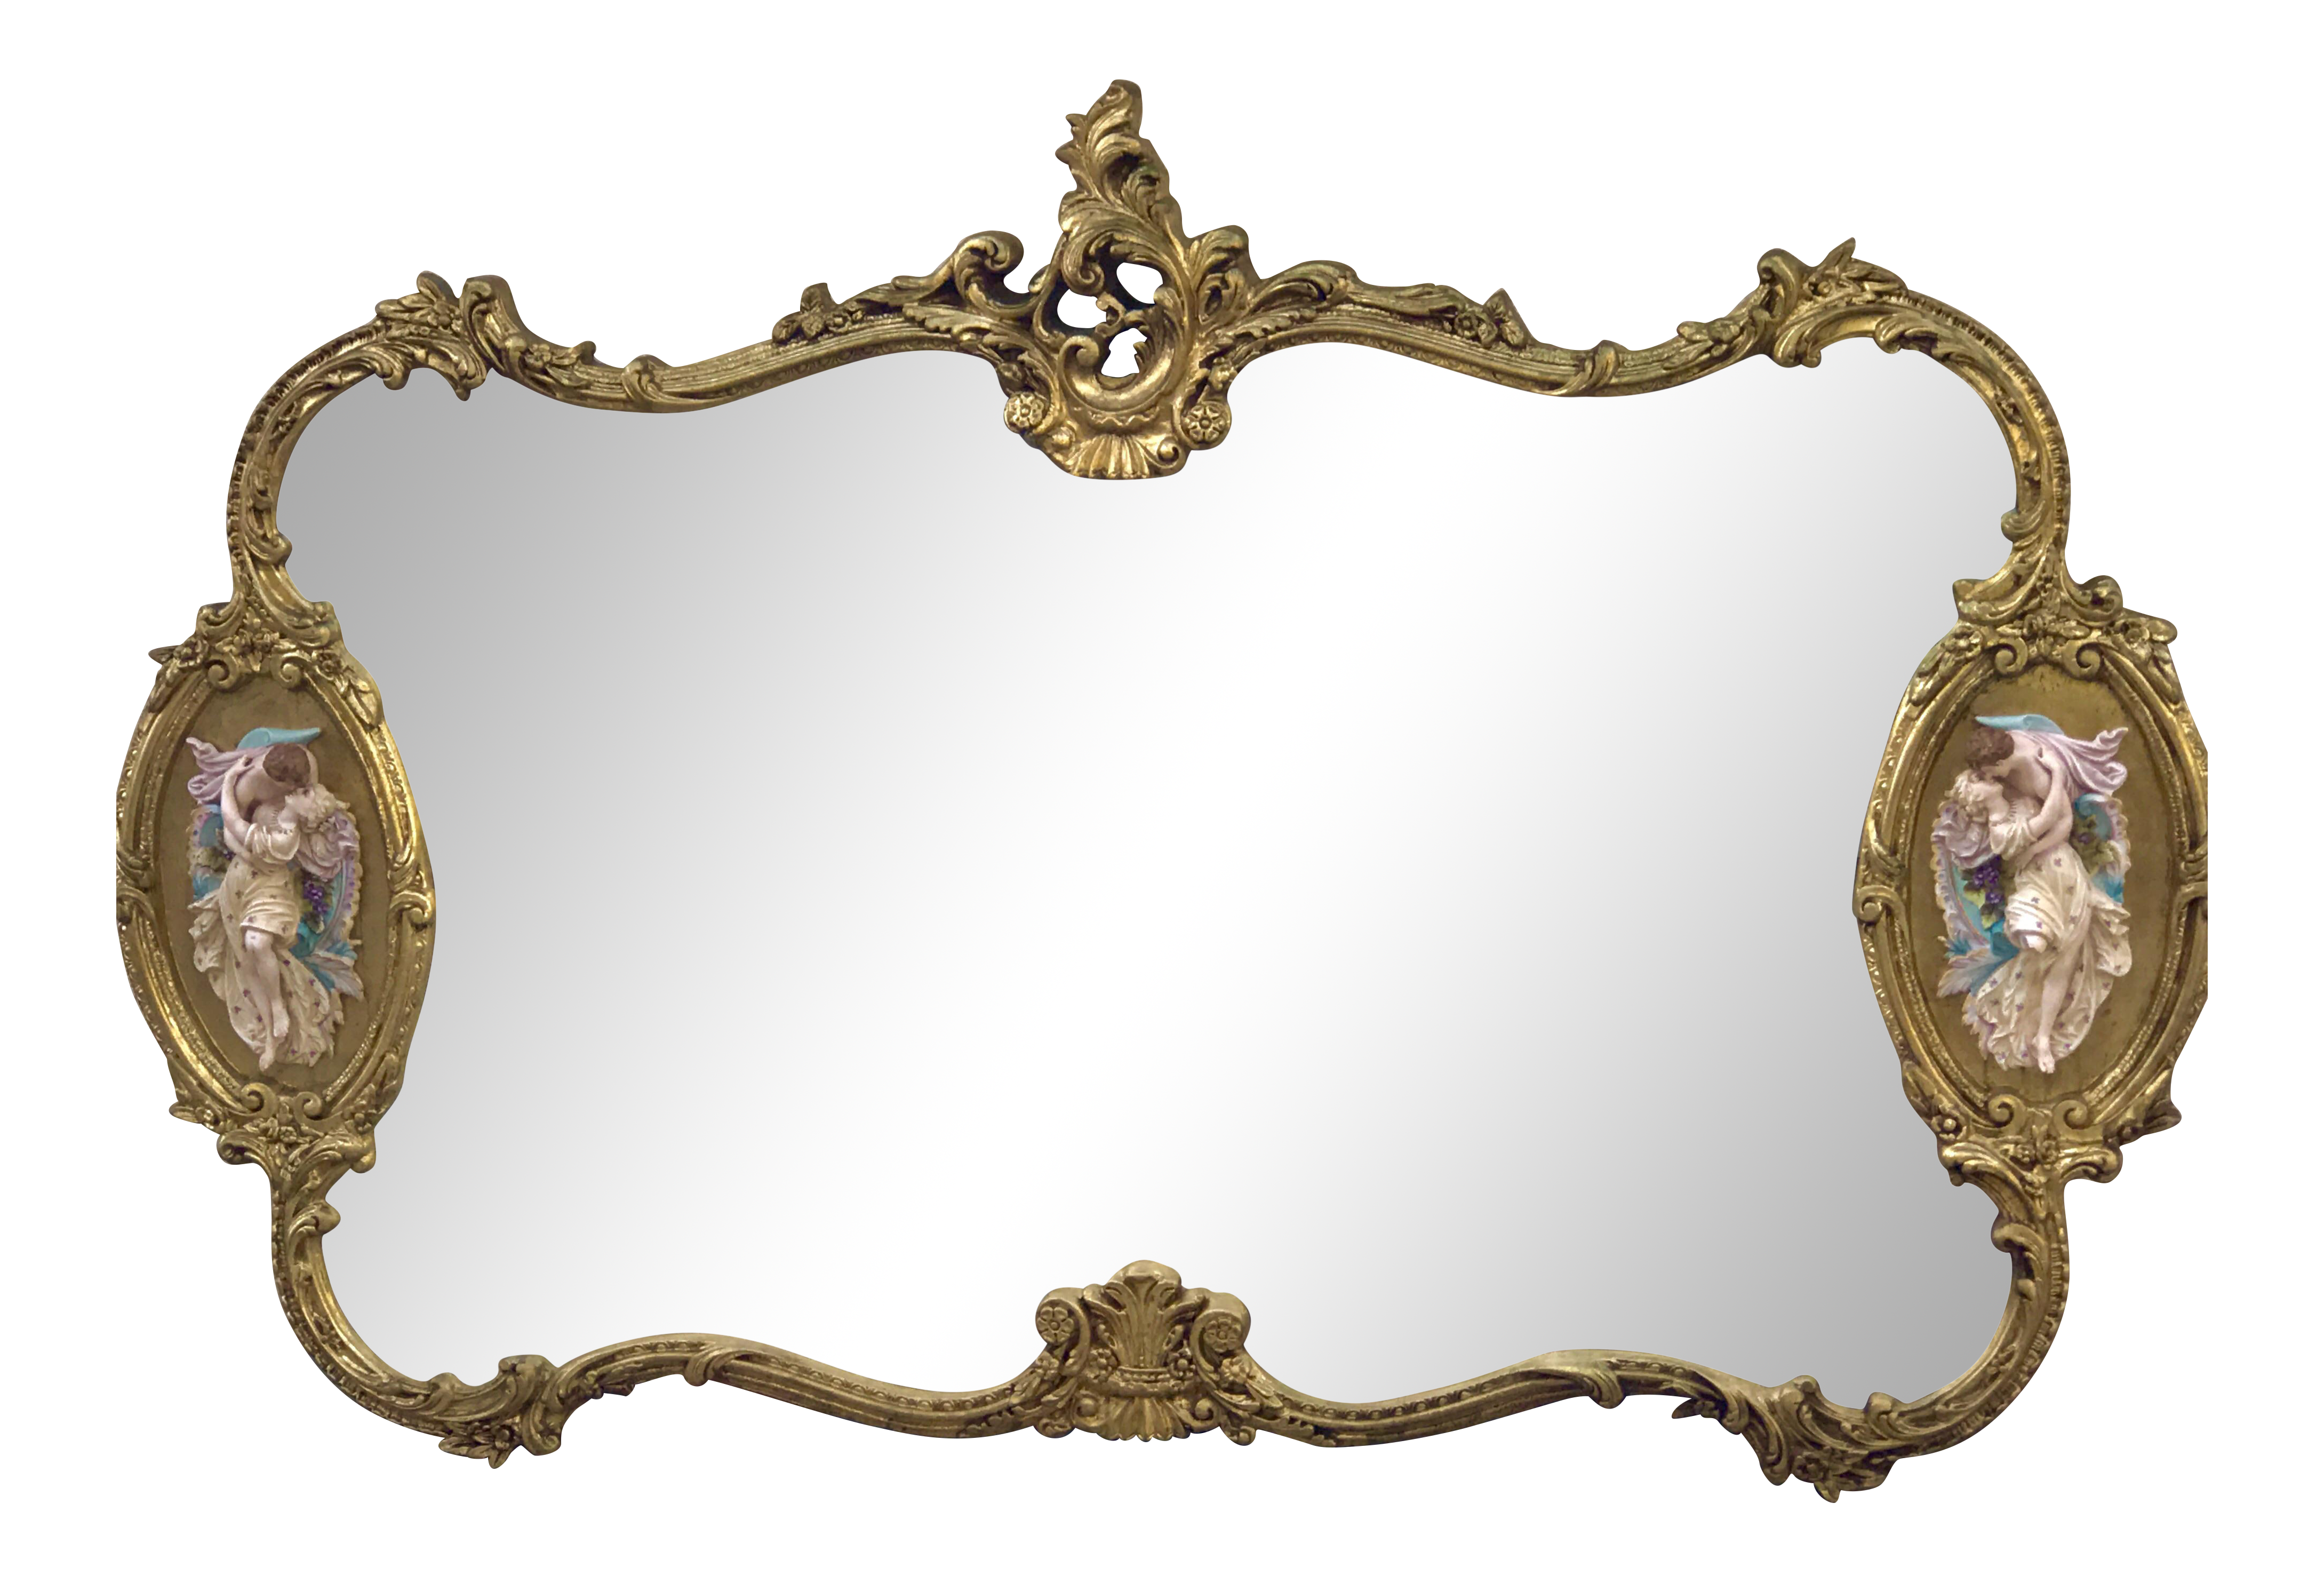 Old mirror png. Antique italian rococo gold